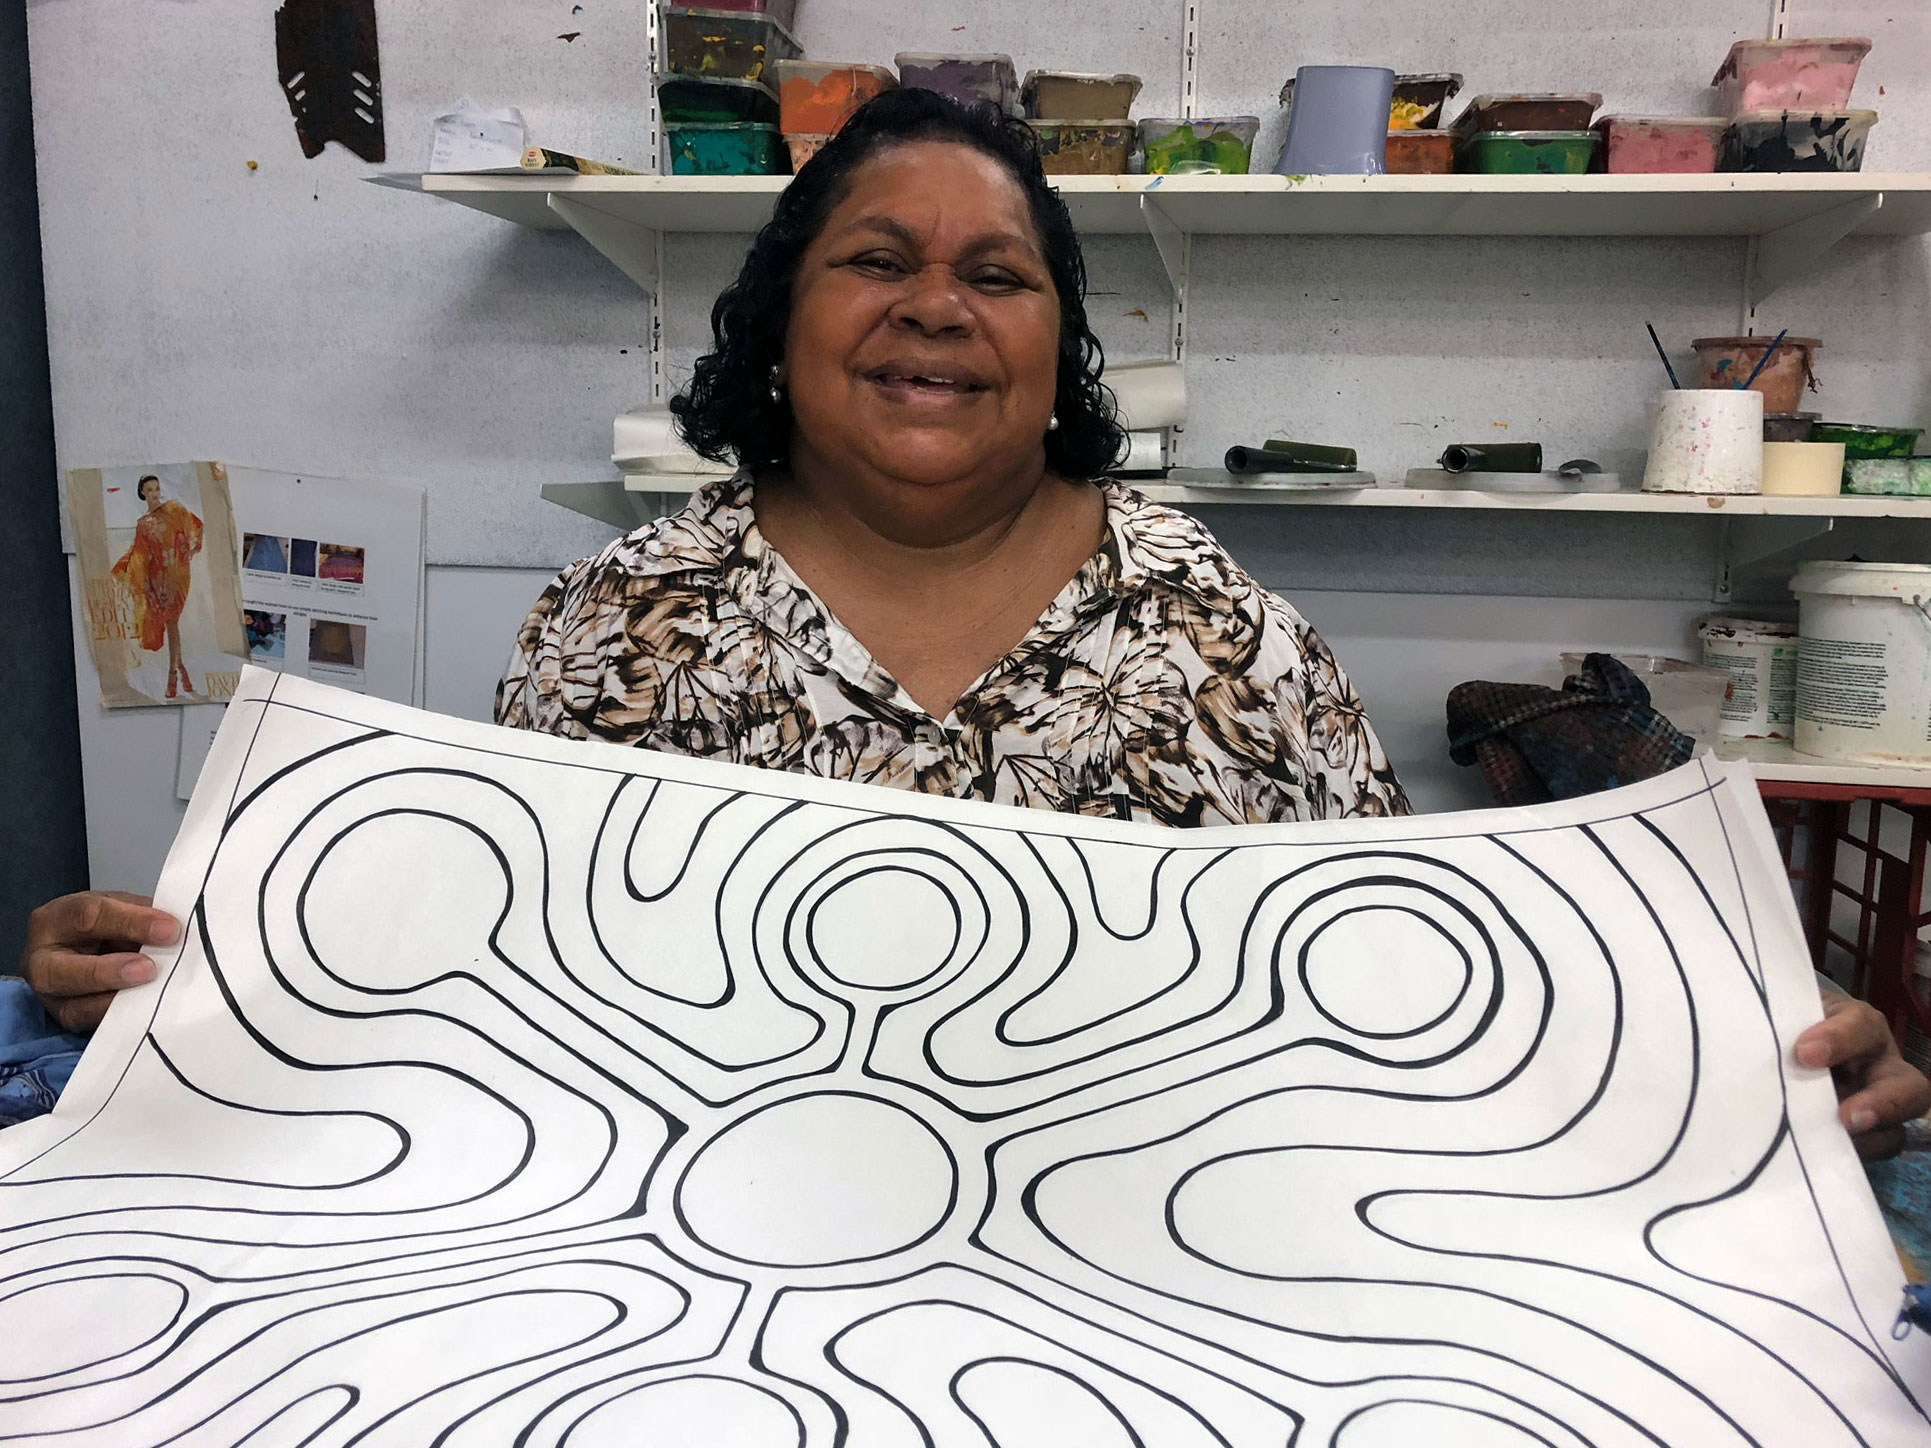 MudMap-Studio-Martha-Lee-with-her-Jila-(fresh-water-soak)-artwok-to-be-installed-as-a-paving-pattern-in-Chinatown-Broome.-Photo-Vanessa-Margetts.jpg